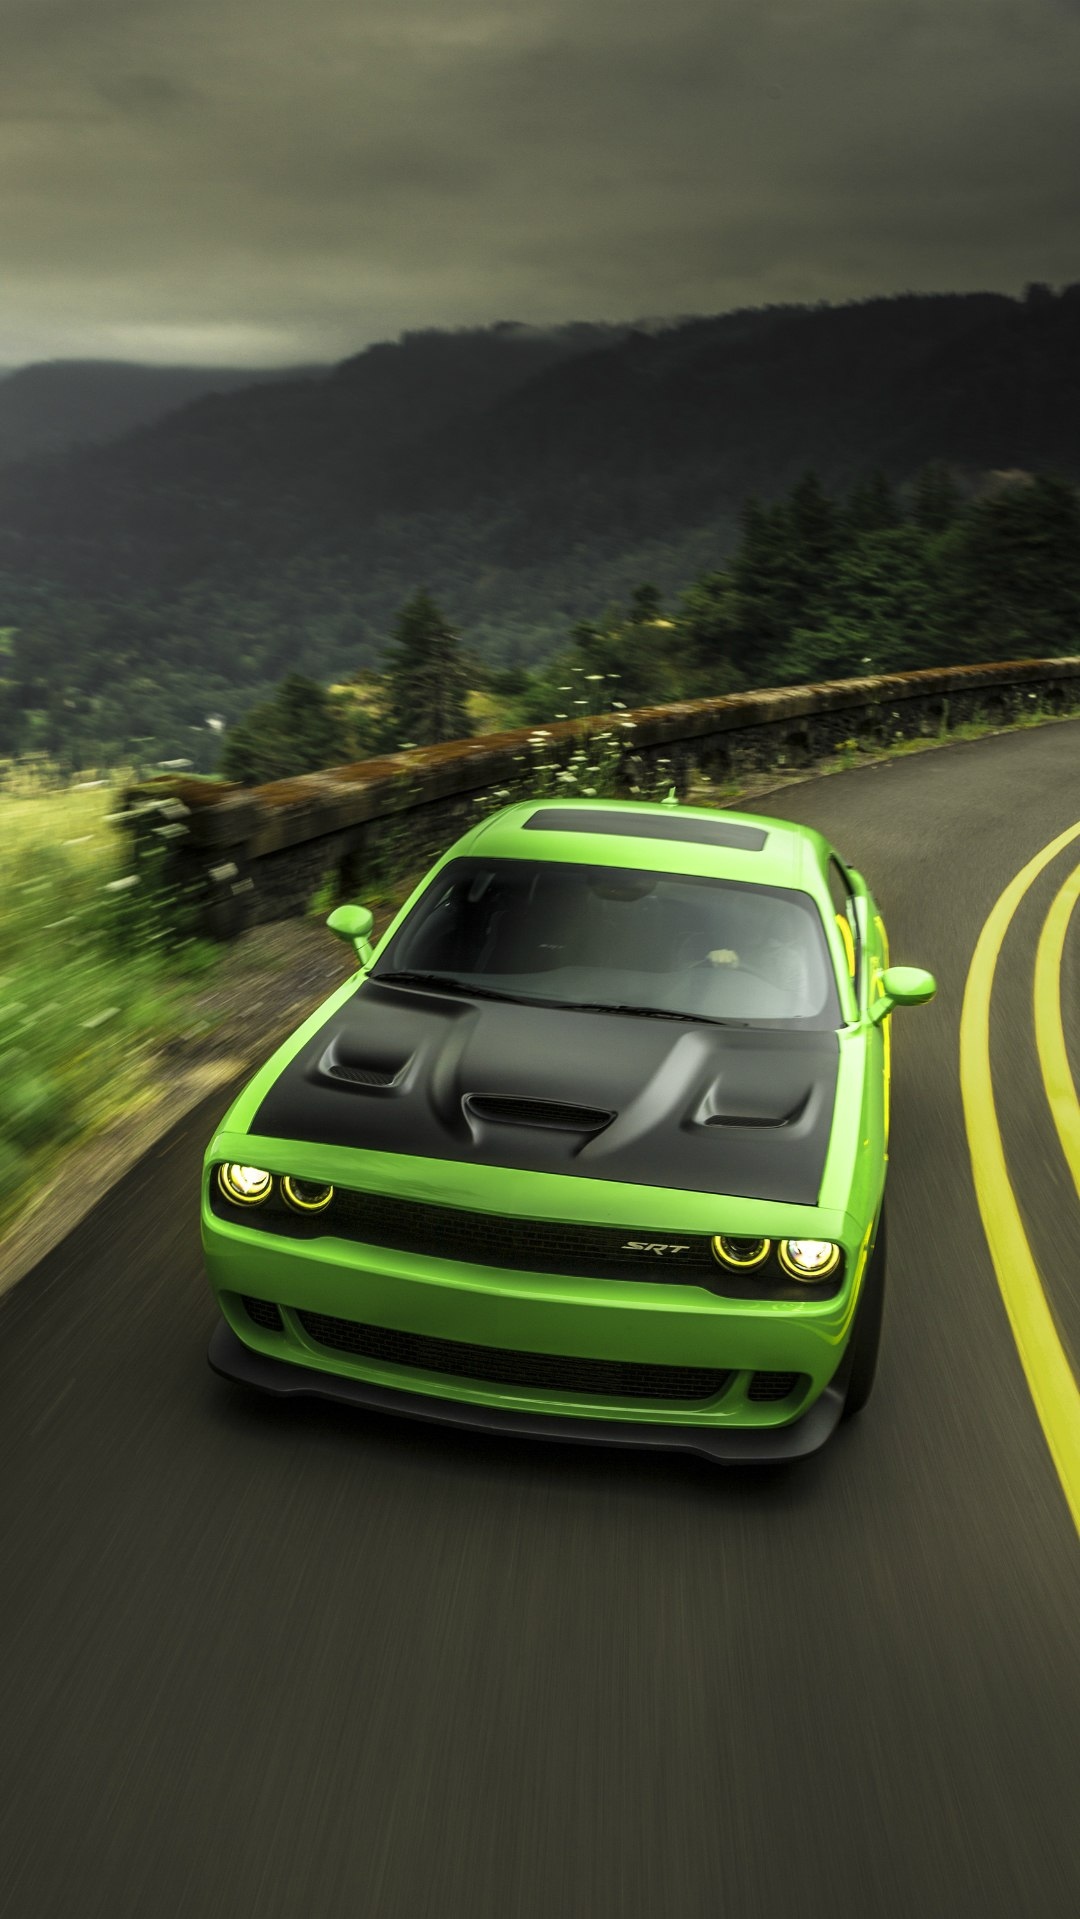 Dodge-Challenger-SRT-Green-iPhone-Wallpaper